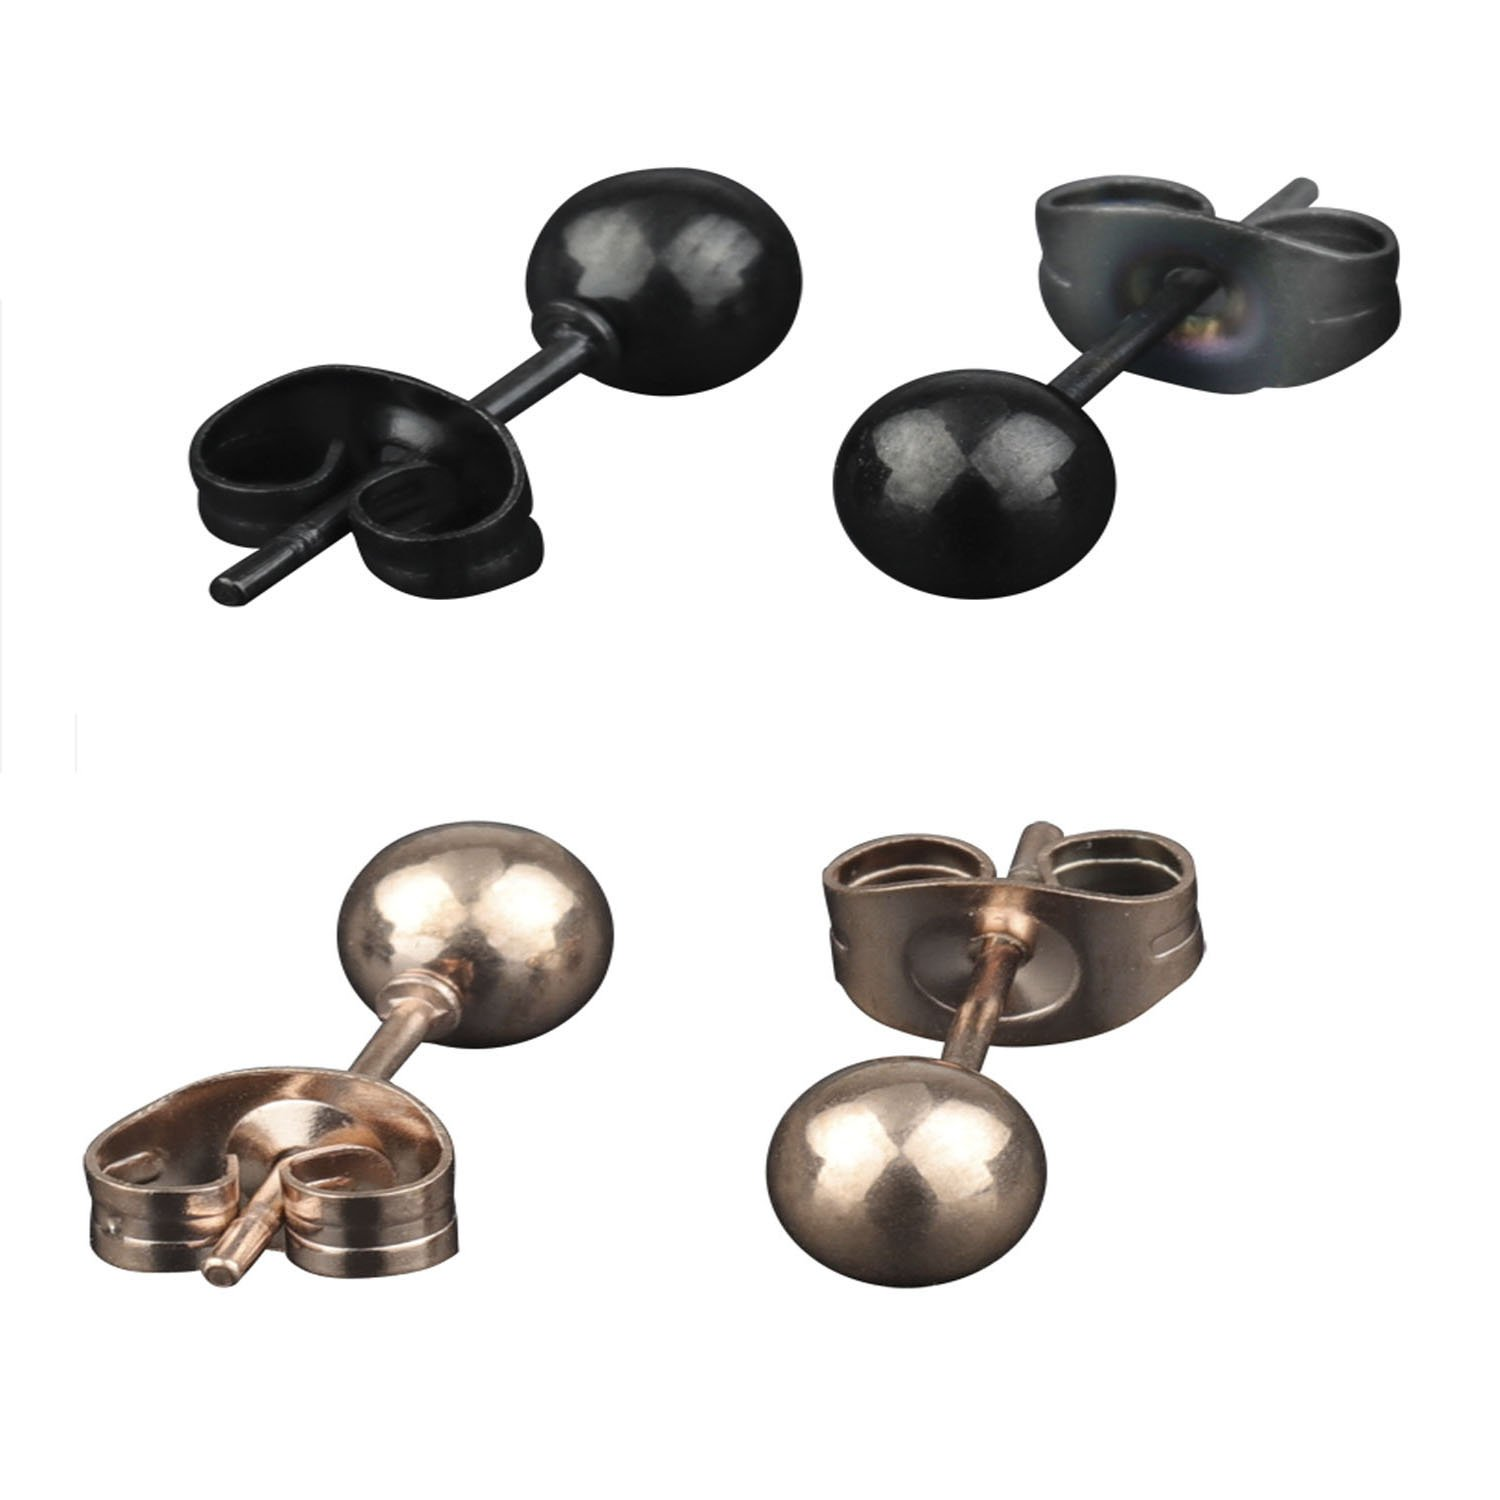 316L Surgical Stainless Steel Round Ball Studs Earrings 2 Pair Black & Rose Gold 4mm Ball A+ CM